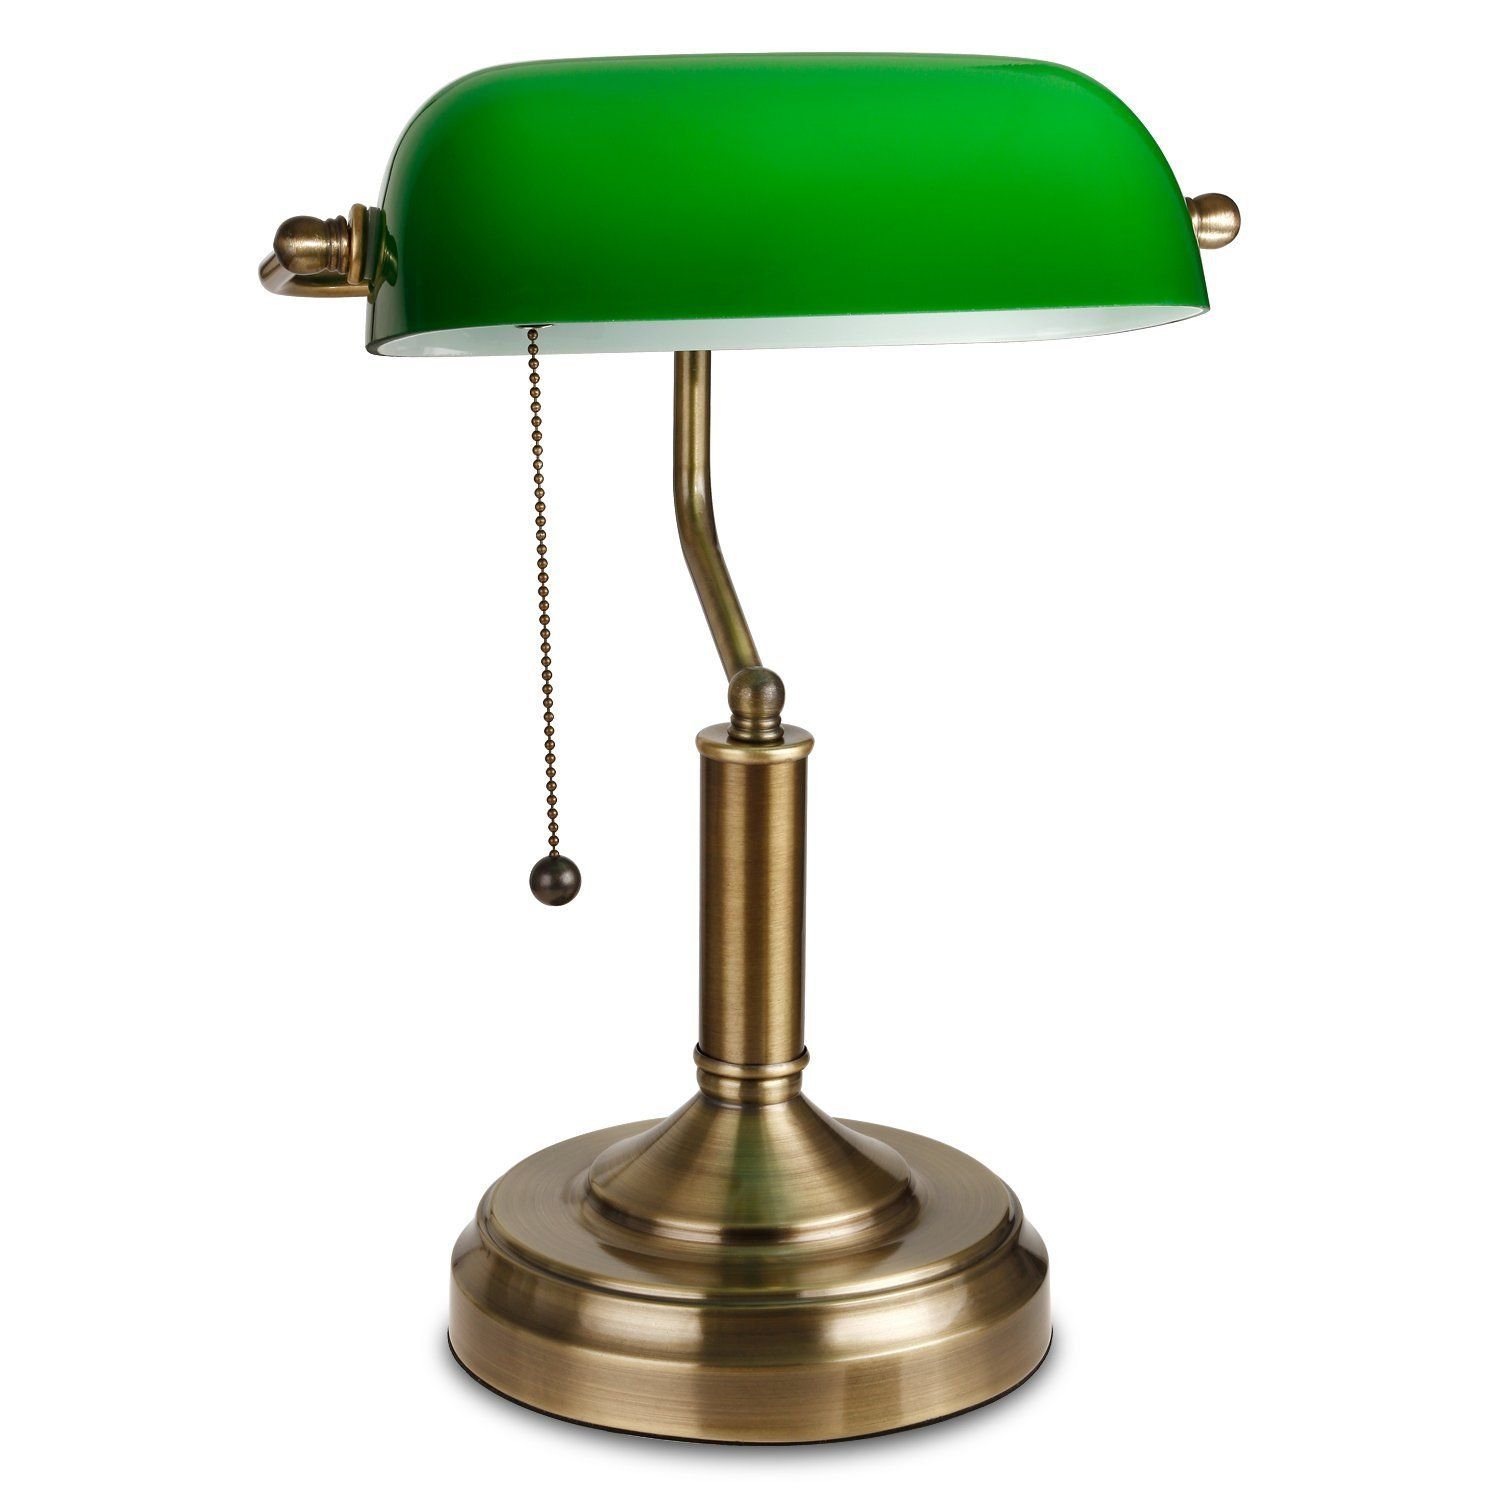 Ad Under 50 Traditional Bankers Lamp Follow Us On Pinterest For More Home Decor Ideas Under 50 Coloresenmi Bankers Lamp Glass Desk Antique Lamps